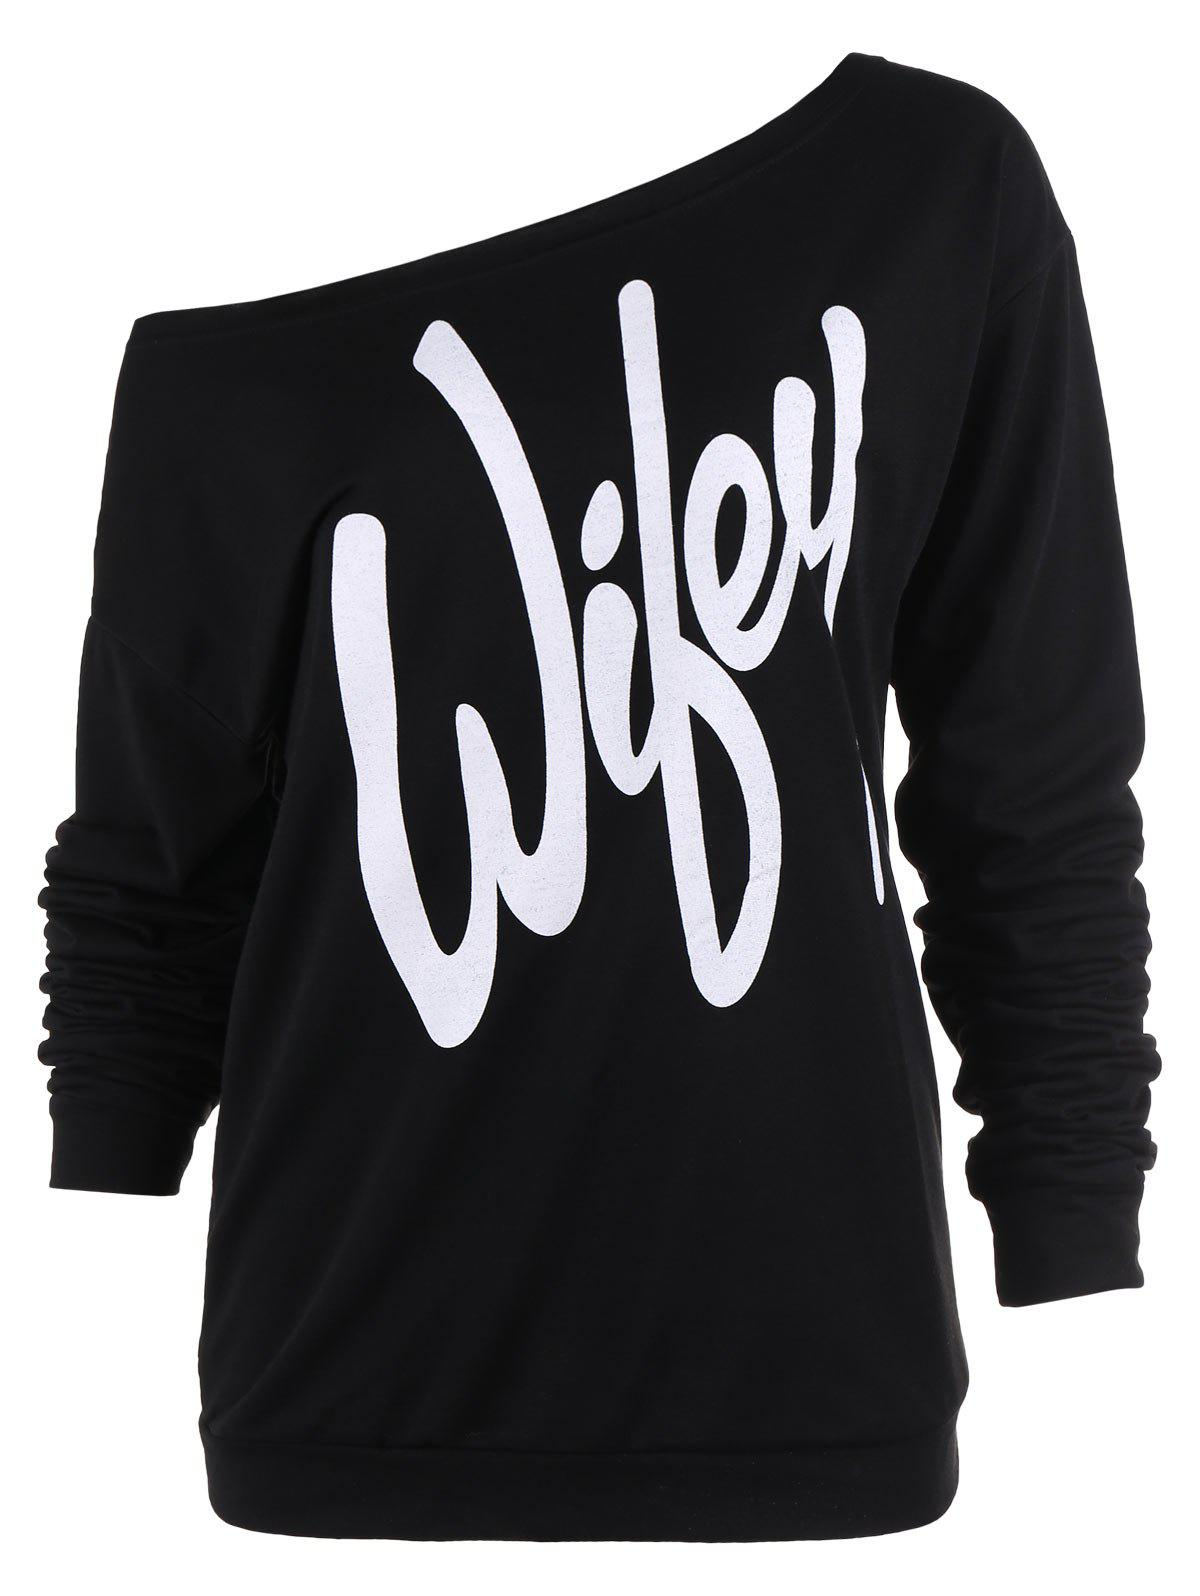 Charming Slash Neck Letter Printed Pullover Sweatshirt For Women casio ltp 1263pg 7b